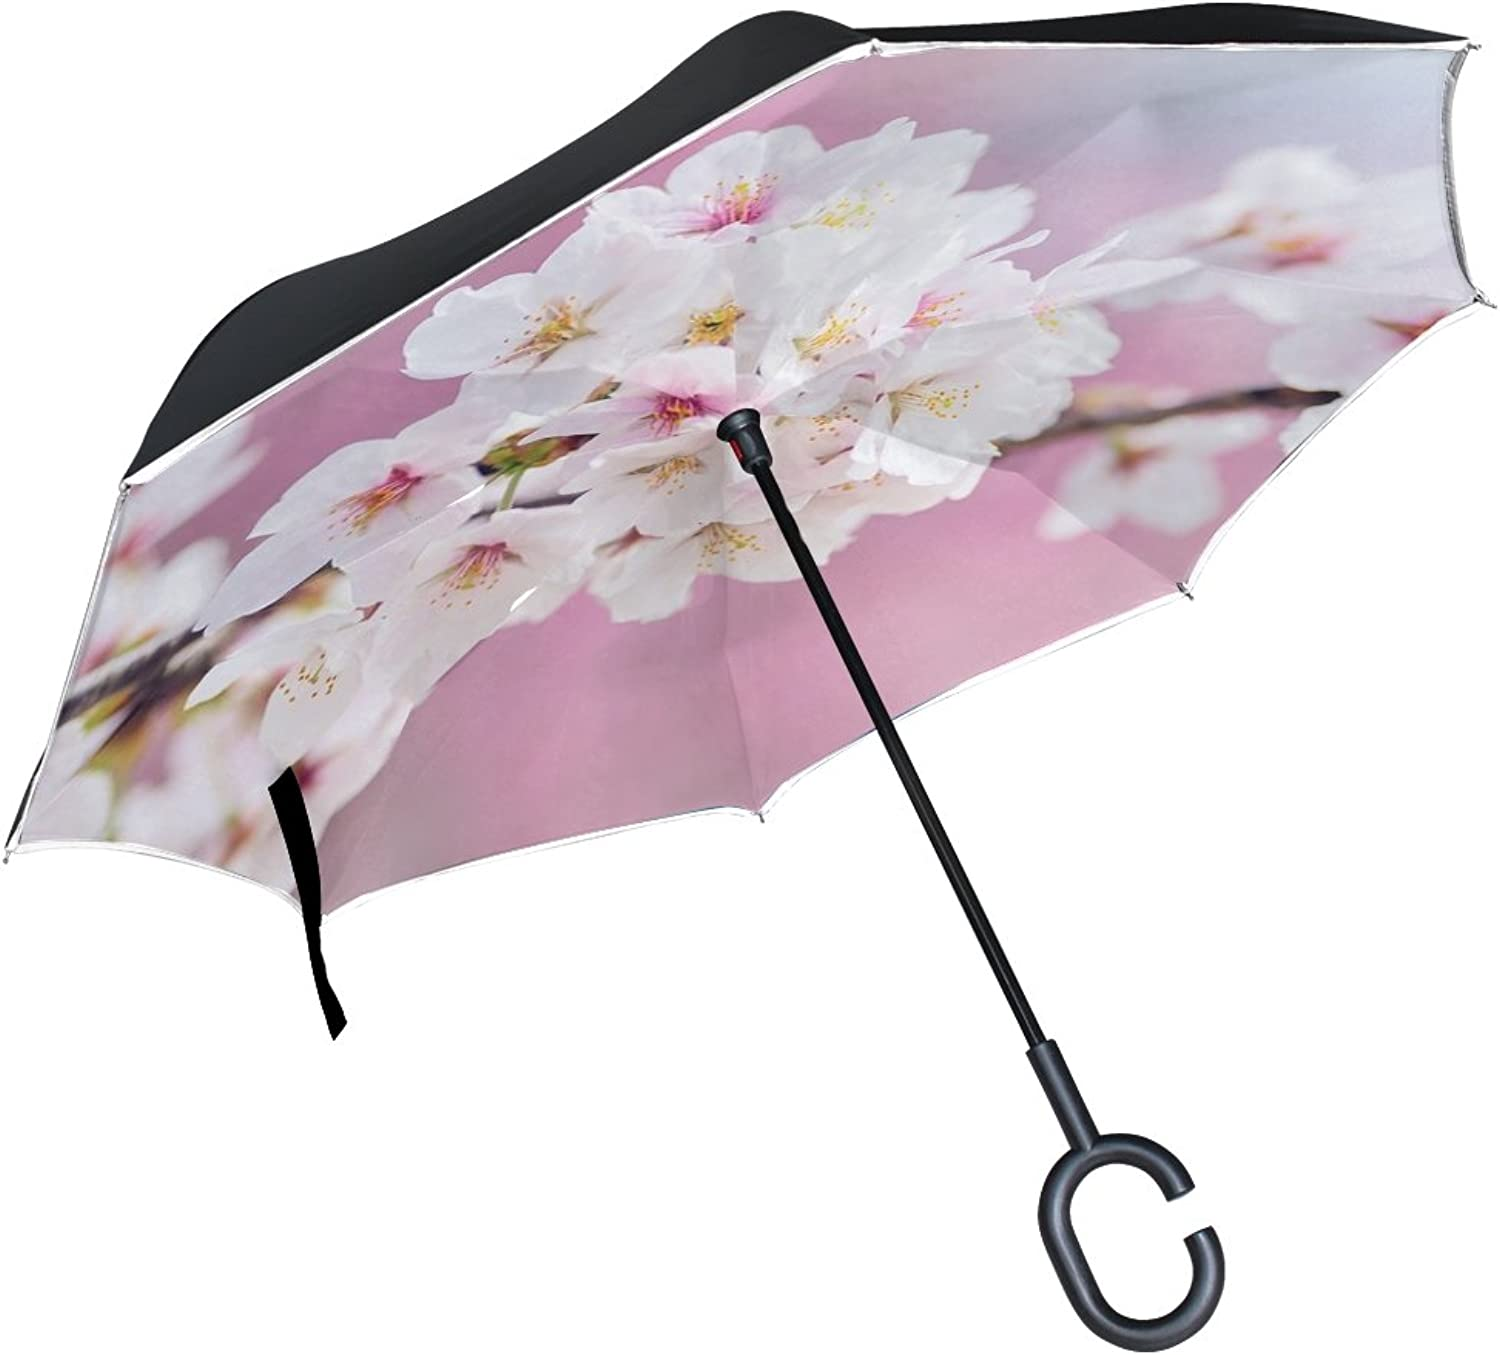 Double Layer Ingreened Japan Landscape Spring Plant Cherry Blossoms Umbrellas Reverse Folding Umbrella Windproof Uv Predection Big Straight Umbrella for Car Rain Outdoor with CShaped Handle